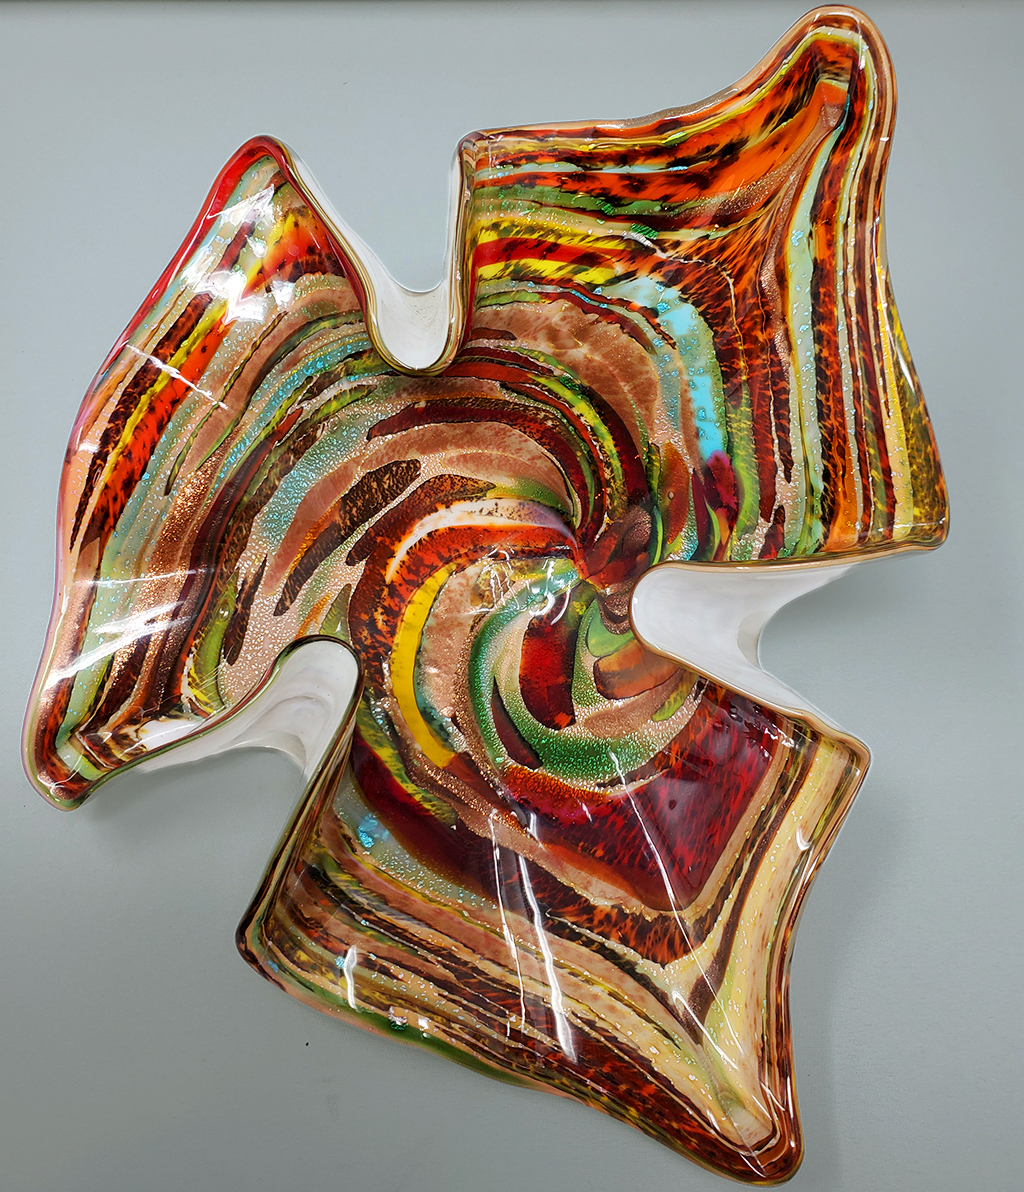 murano-glass-dish-large.jpg